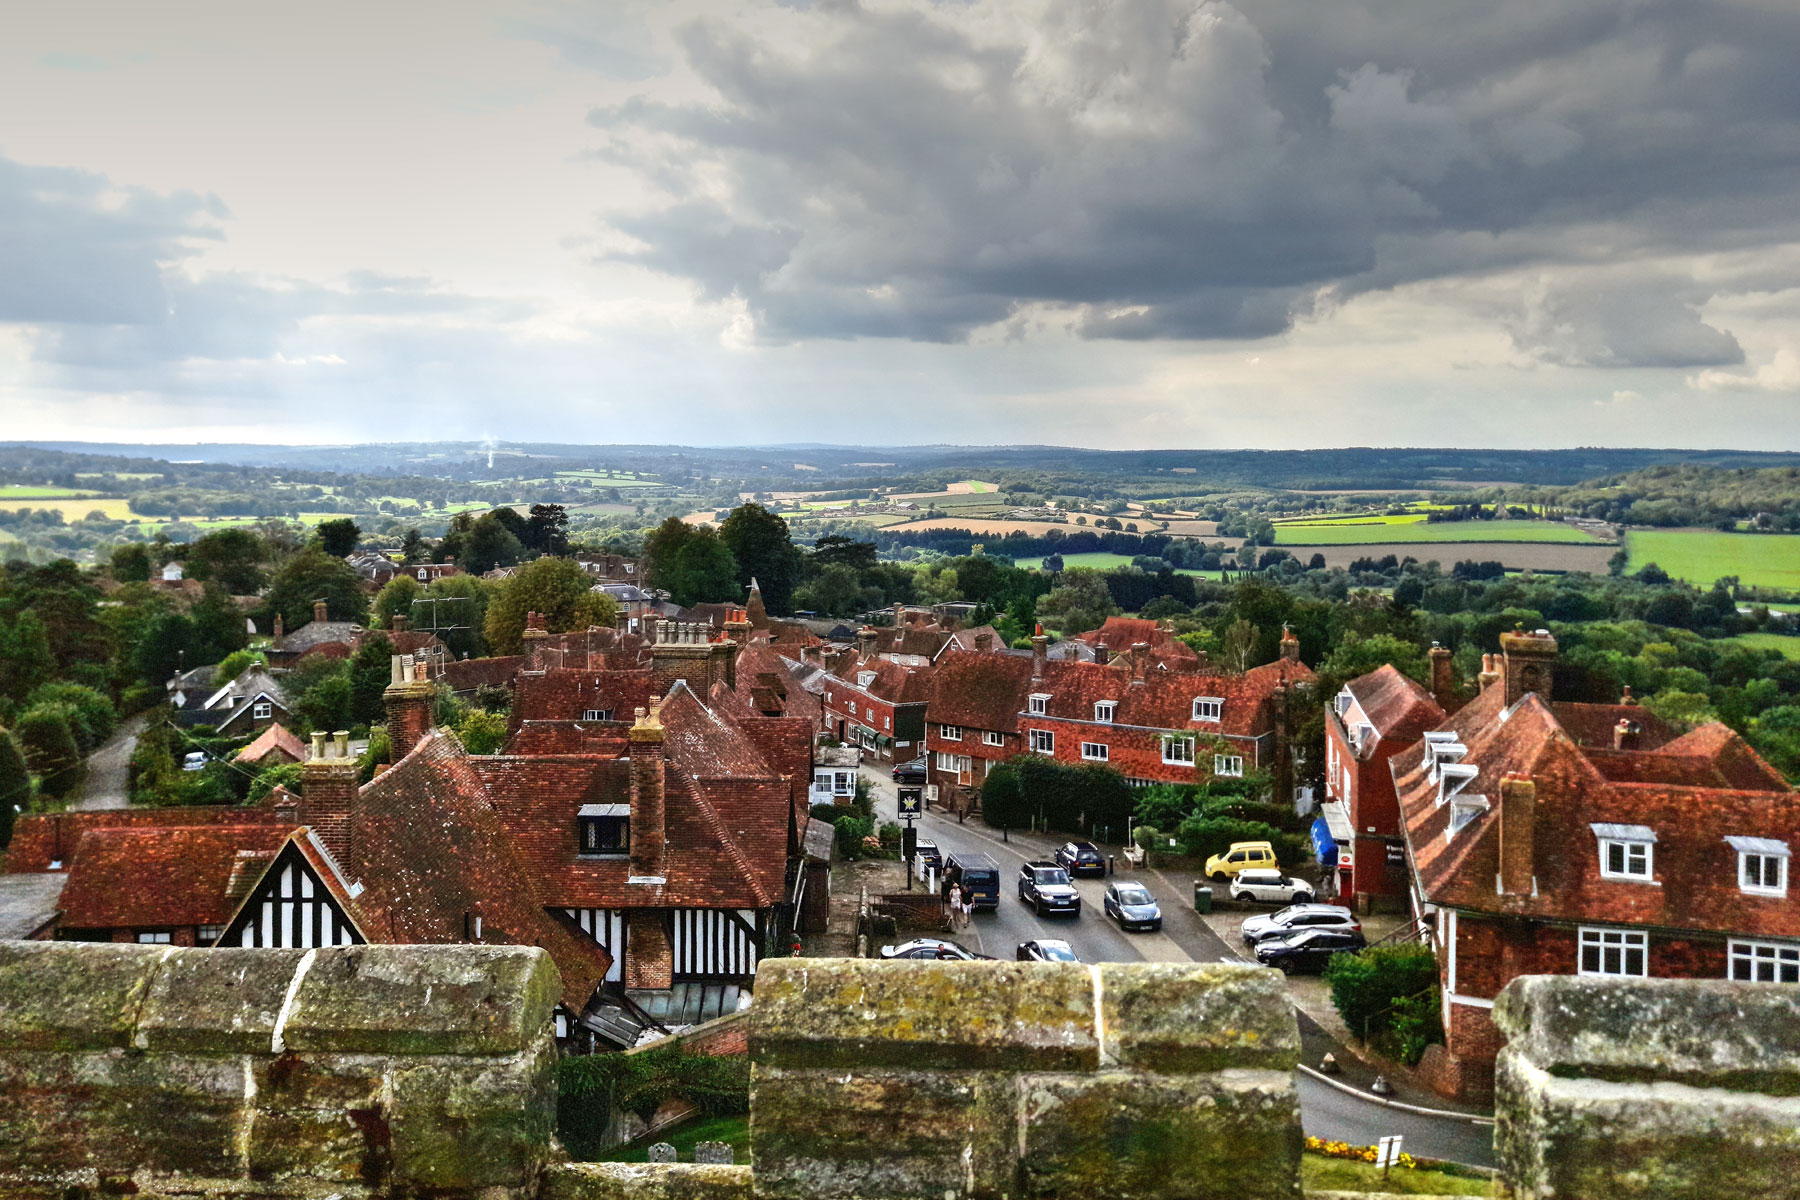 Goudhurst High Street from the Church Tower